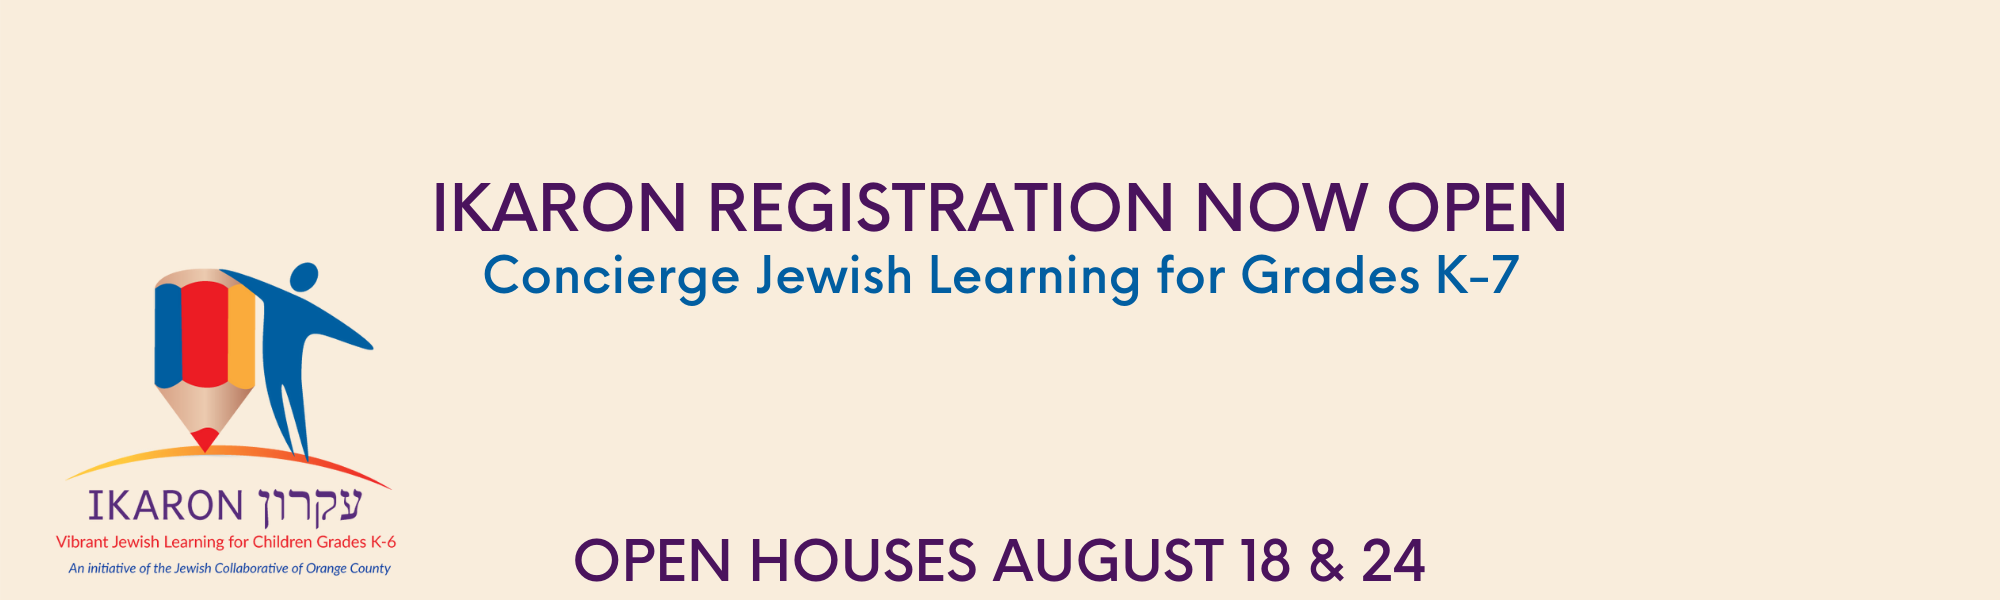 """</a>                                                                                                                                                                                      <a href=""""https://www.jewishcollaborativeoc.org/ikaron"""" class=""""slider_link""""                             target=""""_blank"""">                             Click to learn more                            </a>"""